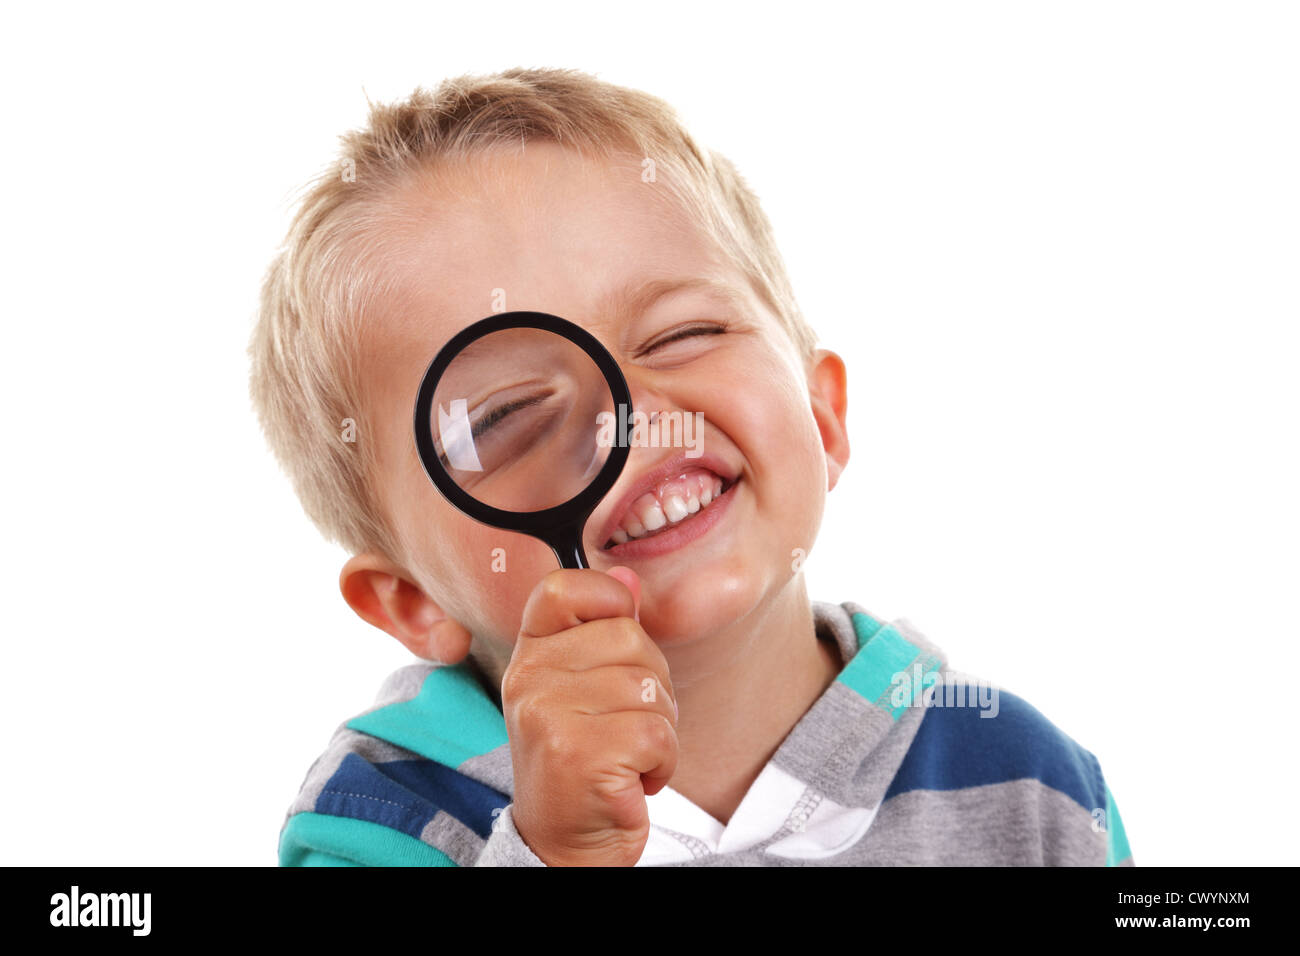 Boy searching with magnifying glass - Stock Image